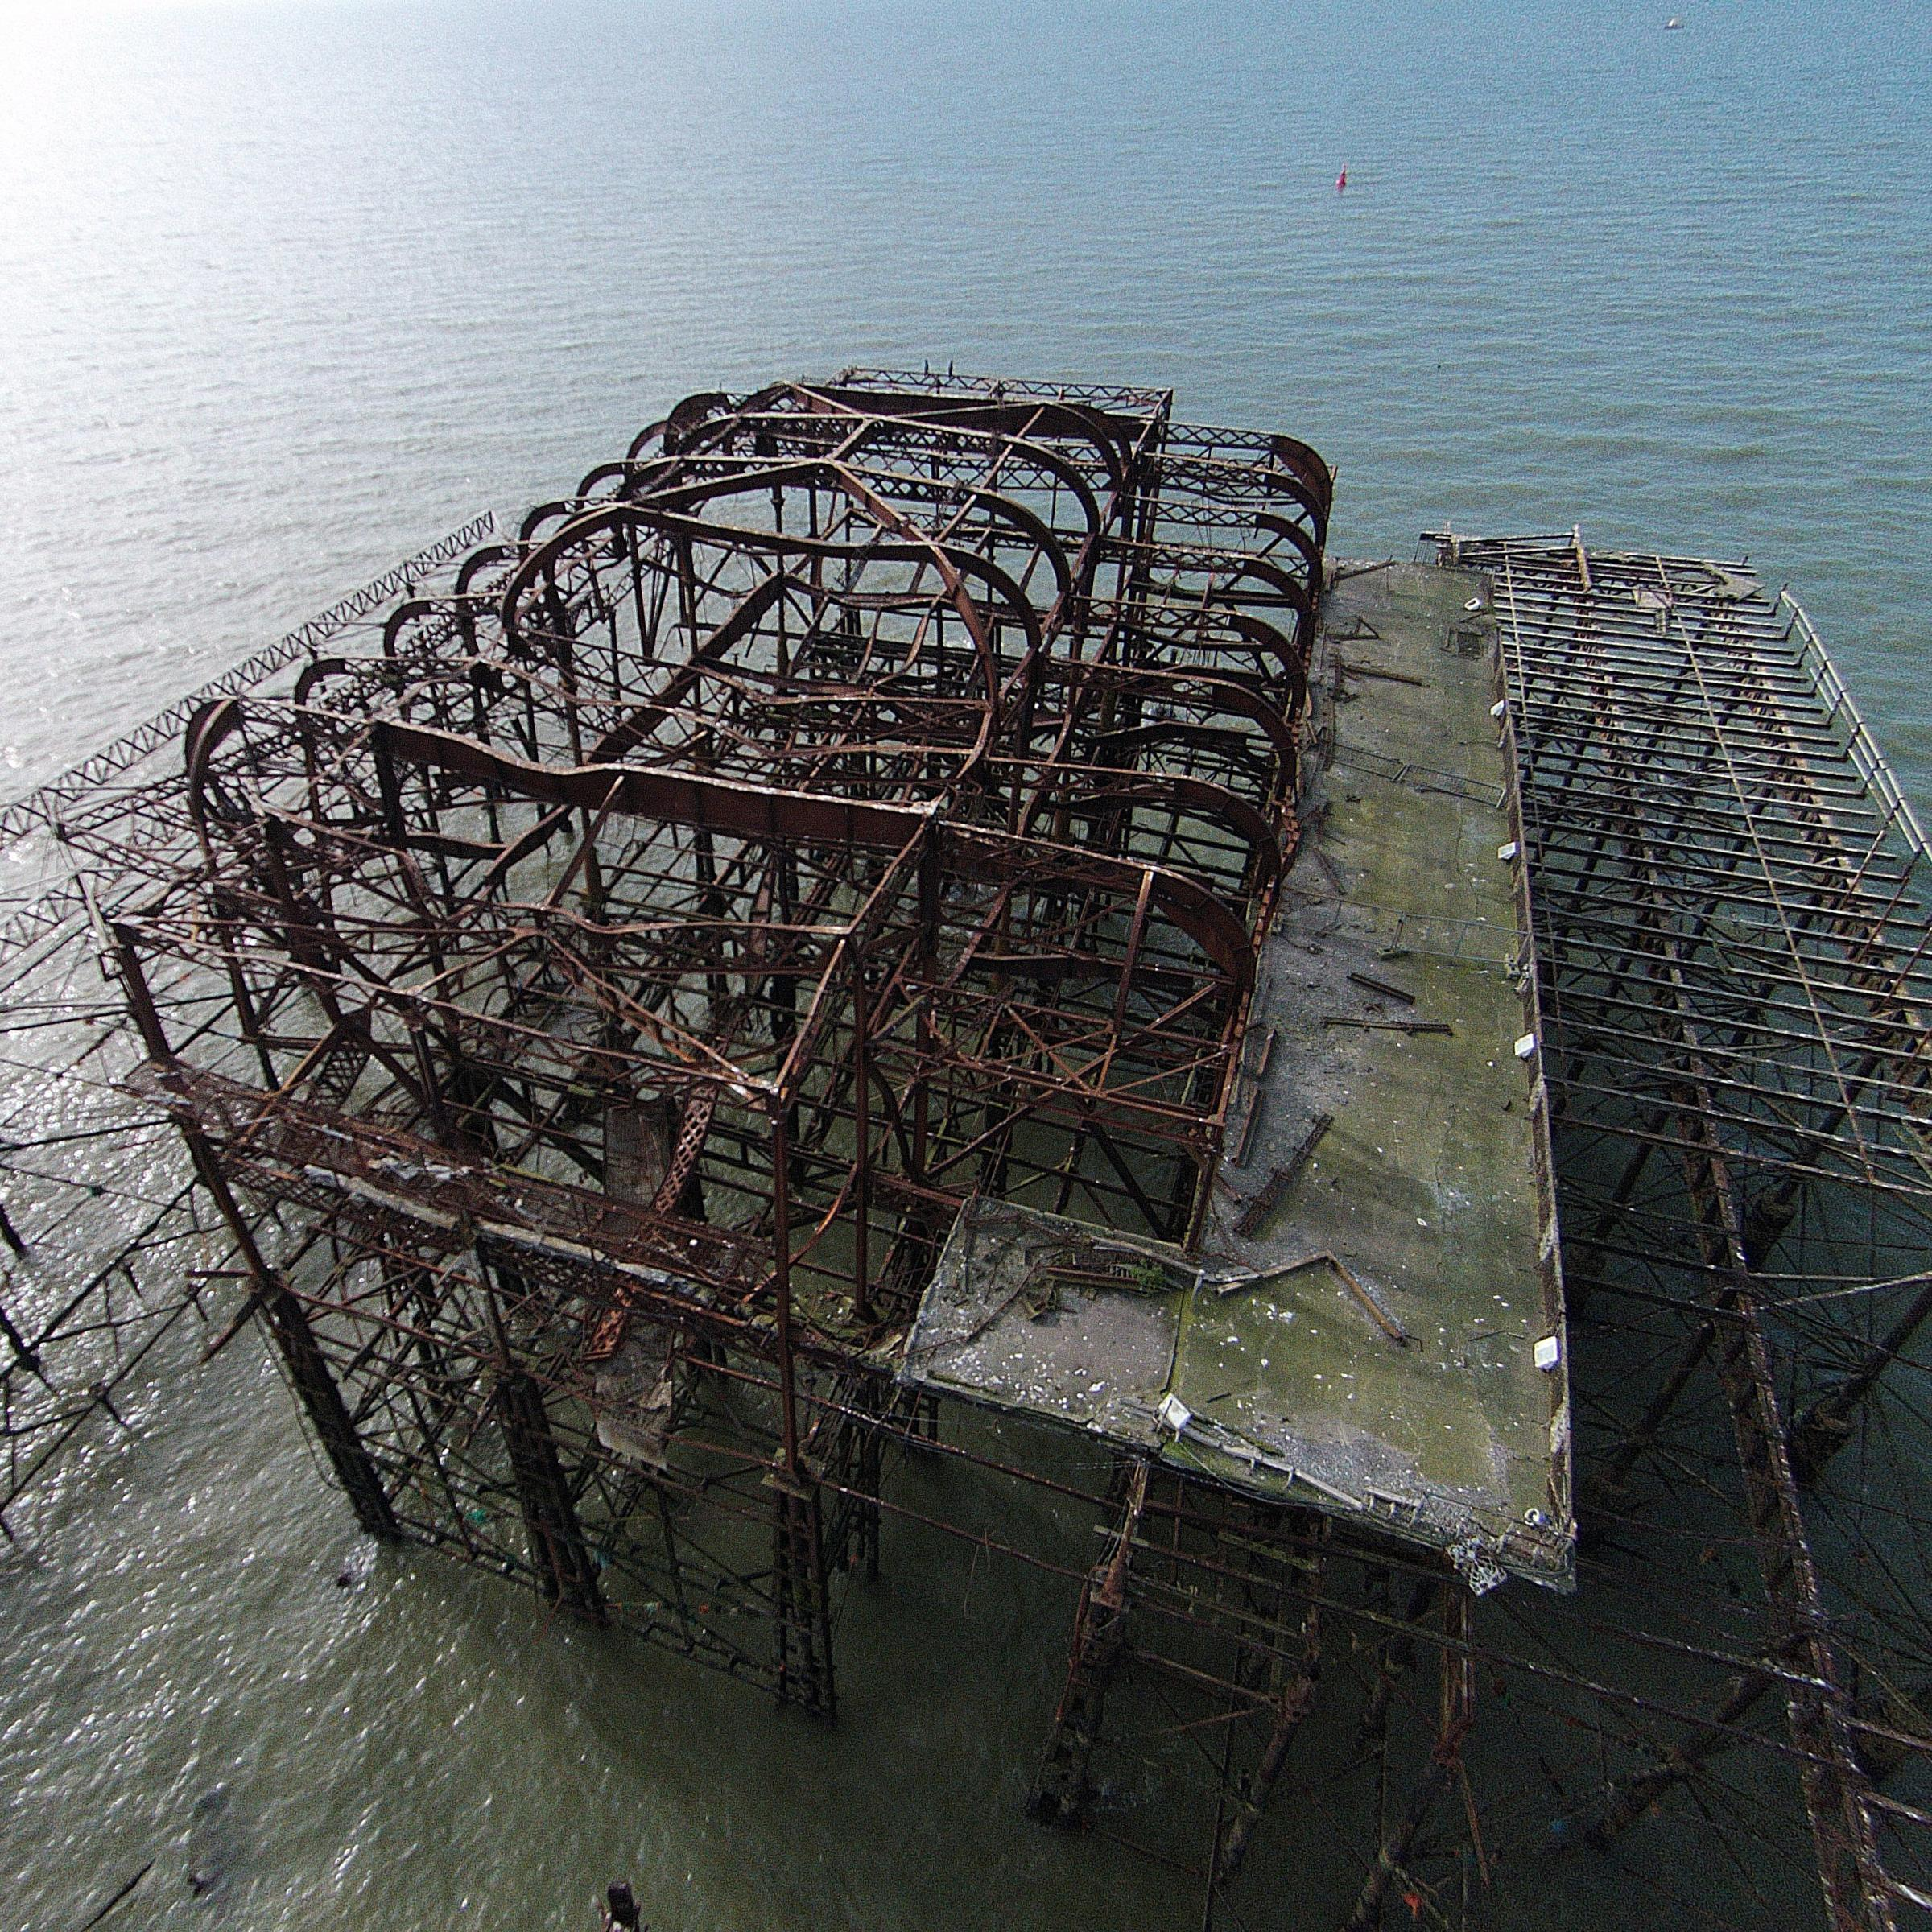 Have your say: Should the West Pier be dismantled? (Pic: Marc Pinter Krainer)